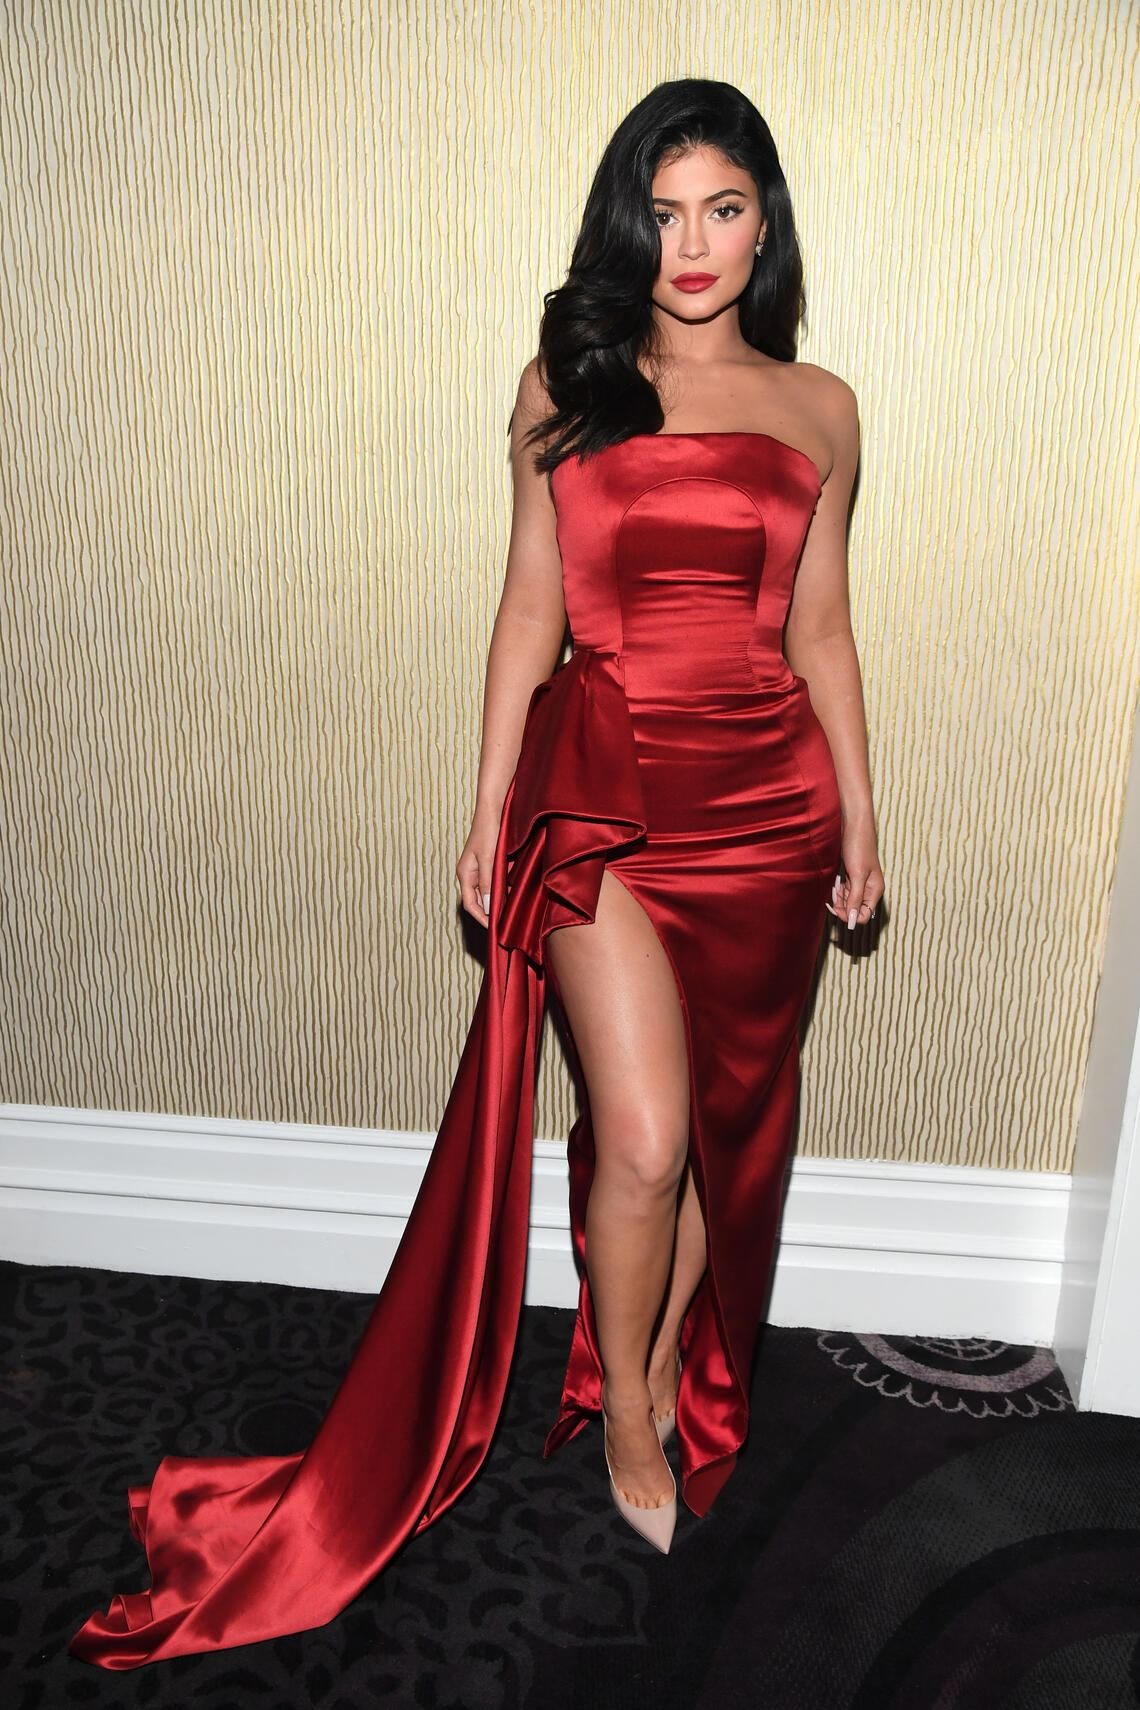 BEVERLY HILLS, CA - FEBRUARY 09:  Kylie Jenner poses during the Pre-GRAMMY Gala and GRAMMY Salute to Industry Icons Honoring Clarence Avant at The Beverly Hilton Hotel on February 9, 2019 in Beverly Hills, California.  (Photo by Kevin Mazur/Getty Images for The Recording Academy)